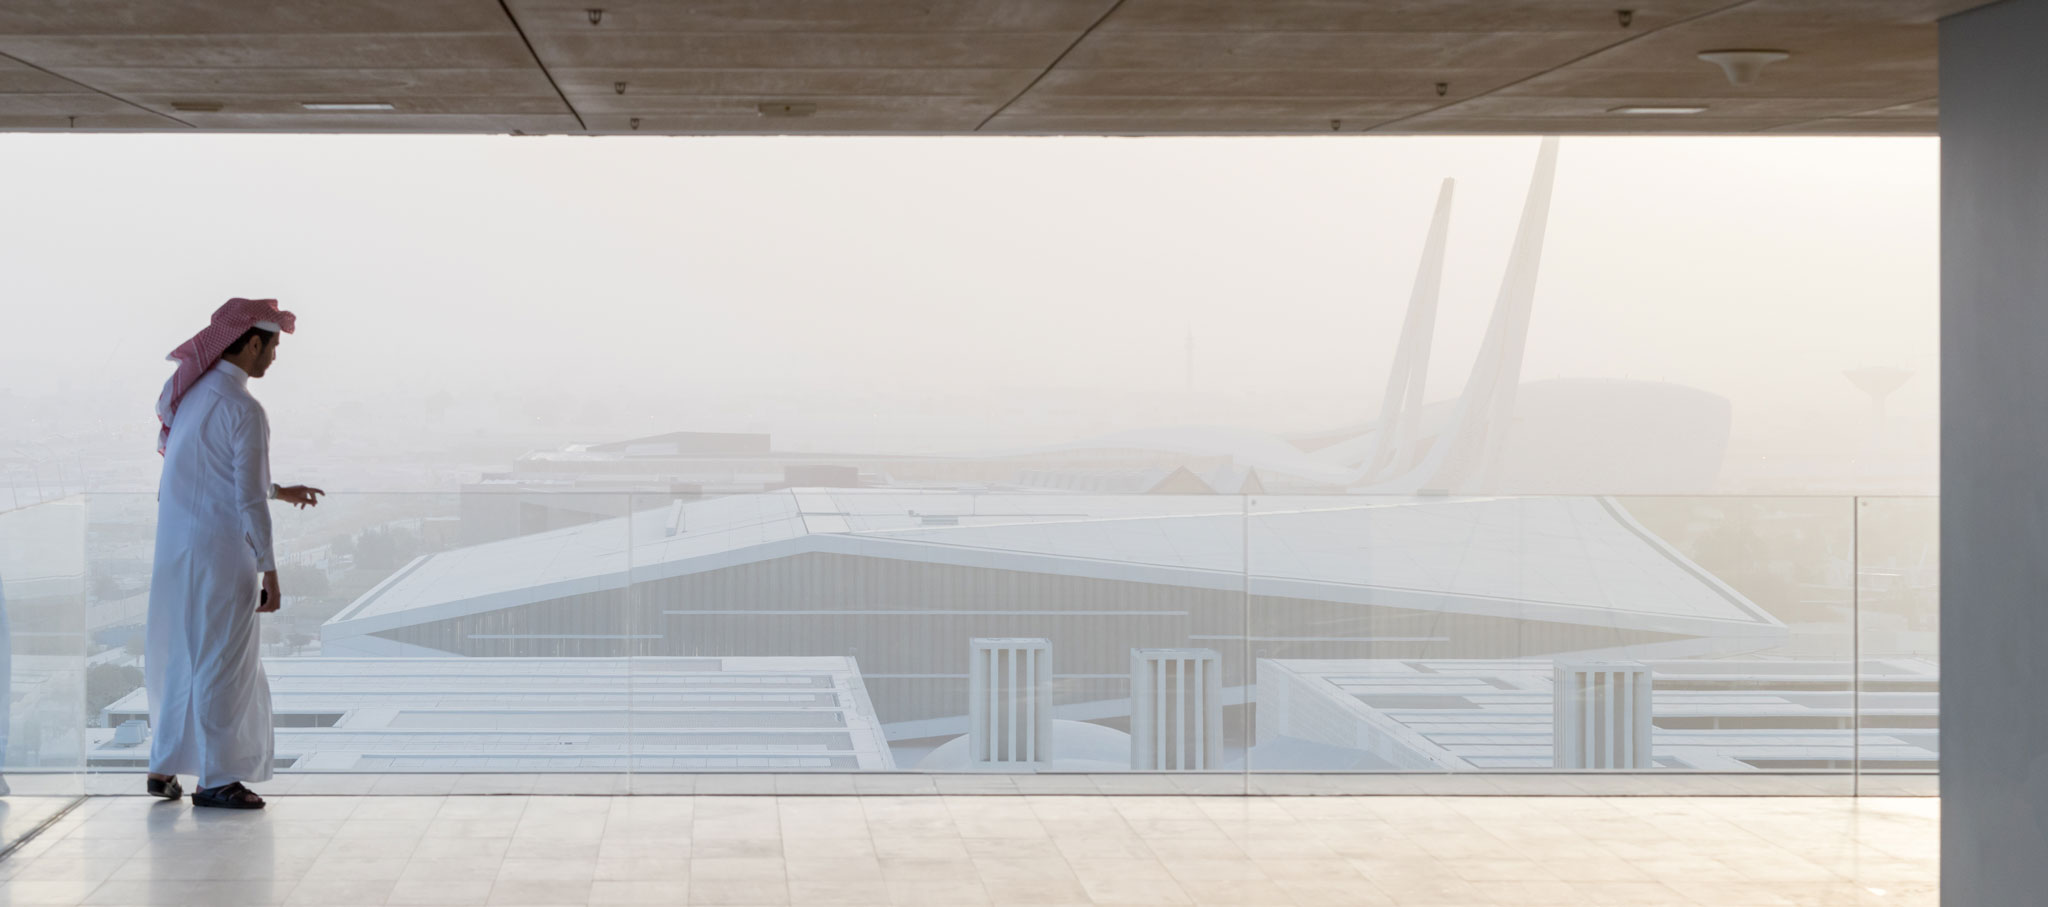 Exterior view from another building. Qatar National Library by OMA. Photograph by Iwan Baan, Courtesy of OMA